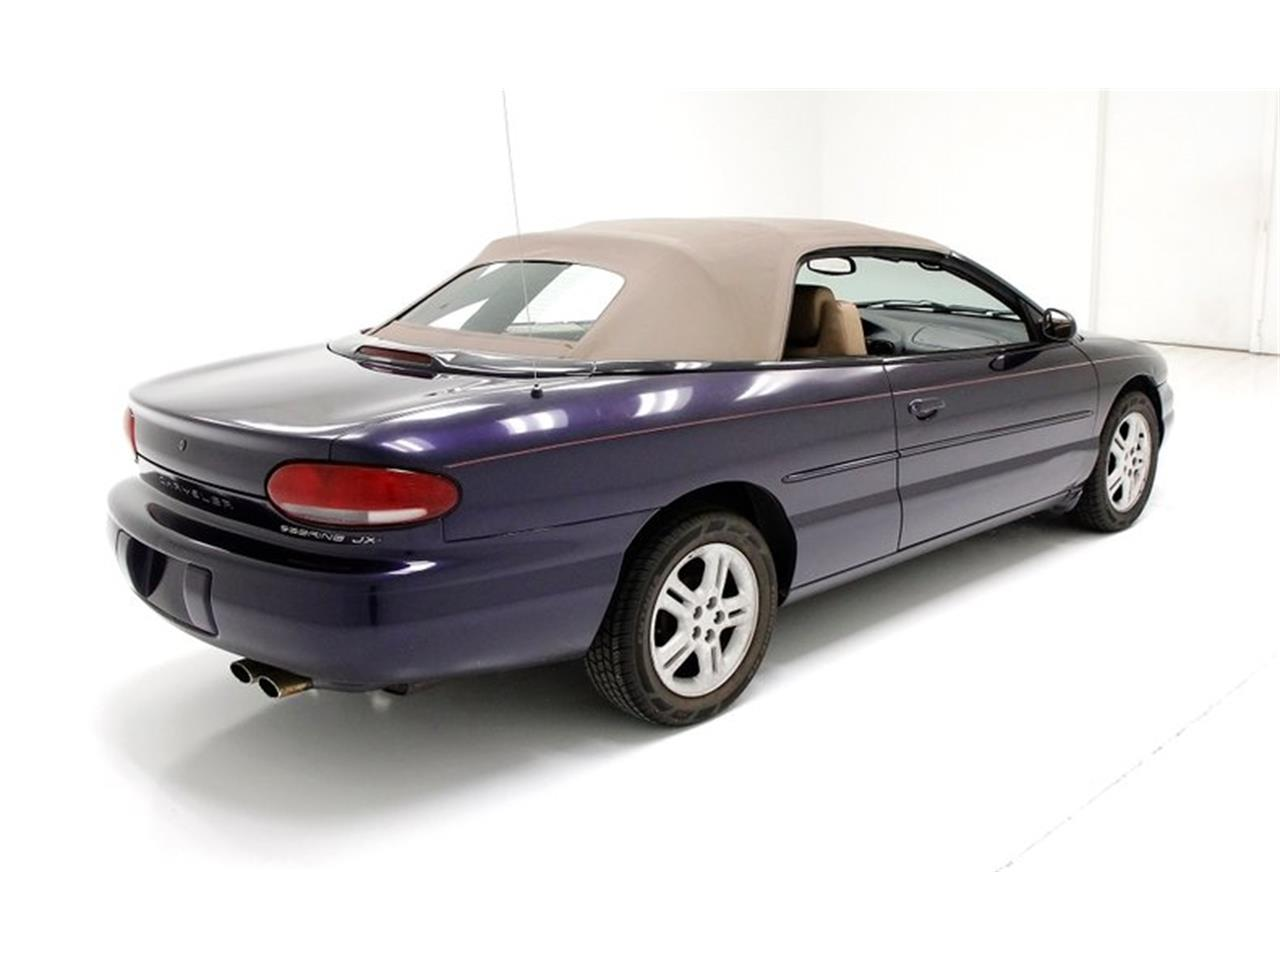 Large Picture of '97 Chrysler Sebring located in Pennsylvania - $7,995.00 - LVUB